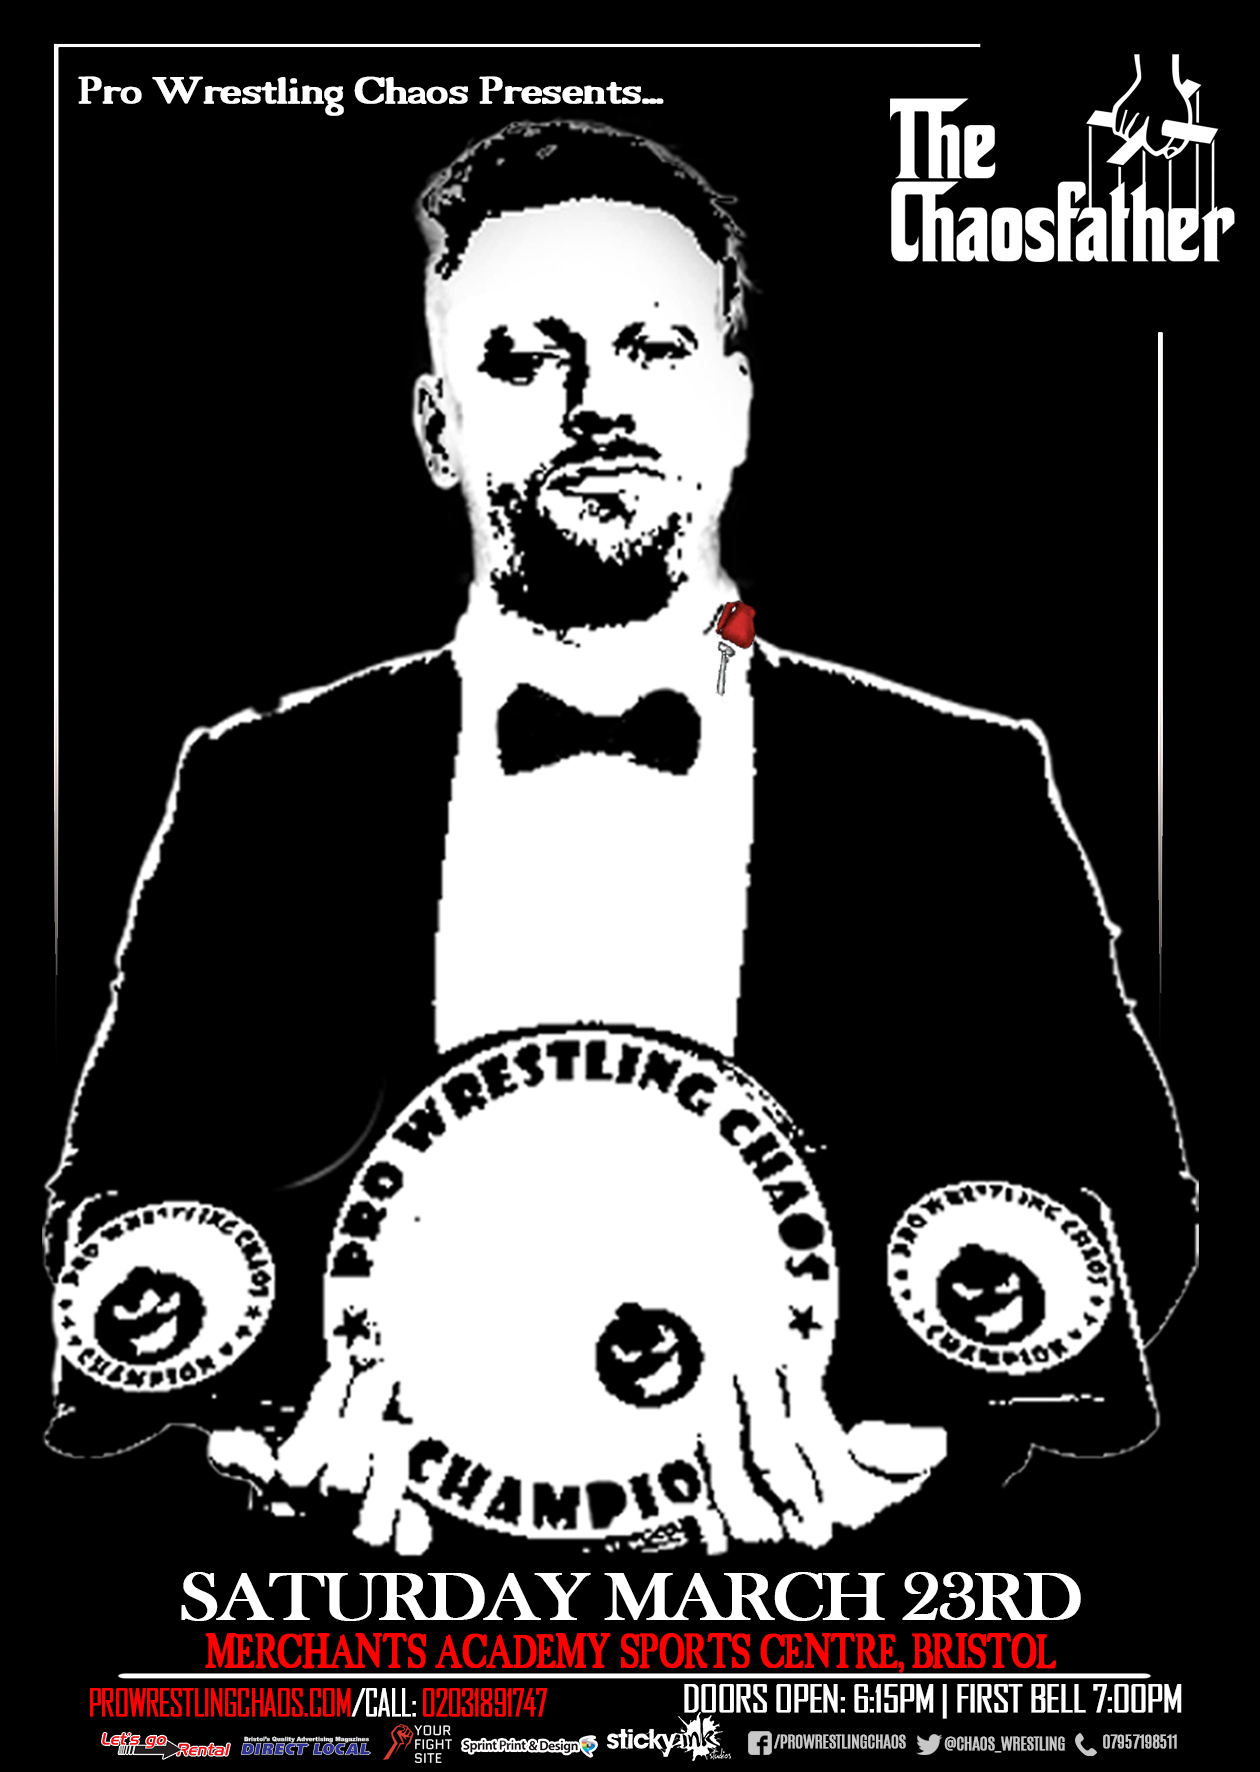 Pro Wrestling Chaos Presents The Chaosfather  event description image